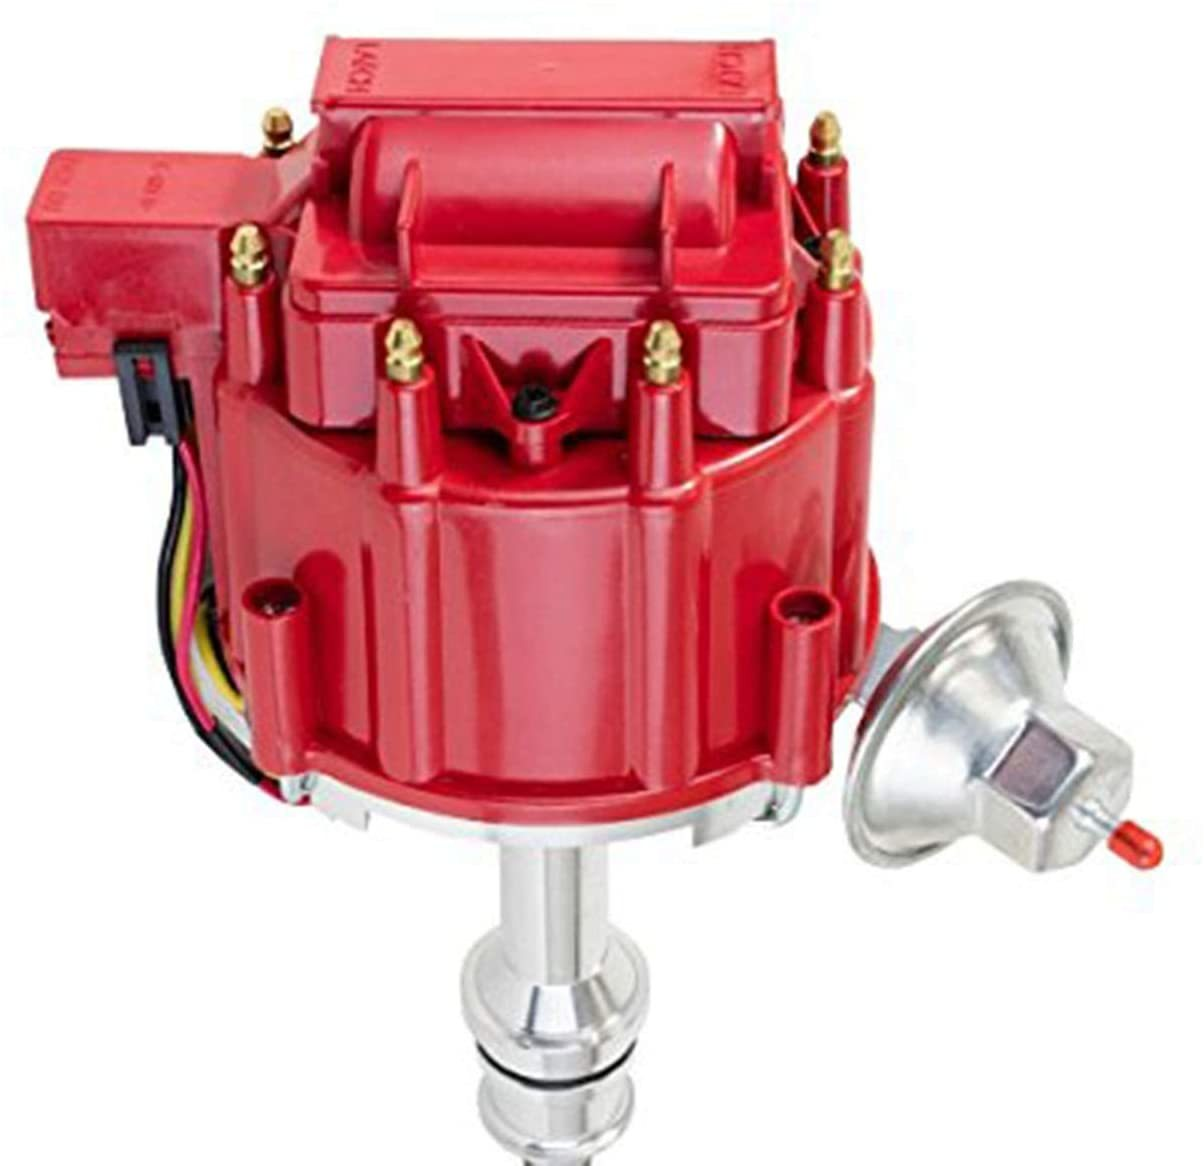 A-Team Performance FORD FE 352 360 390 427 428 HEI DISTRIBUTOR 65K VOLT COIL RED